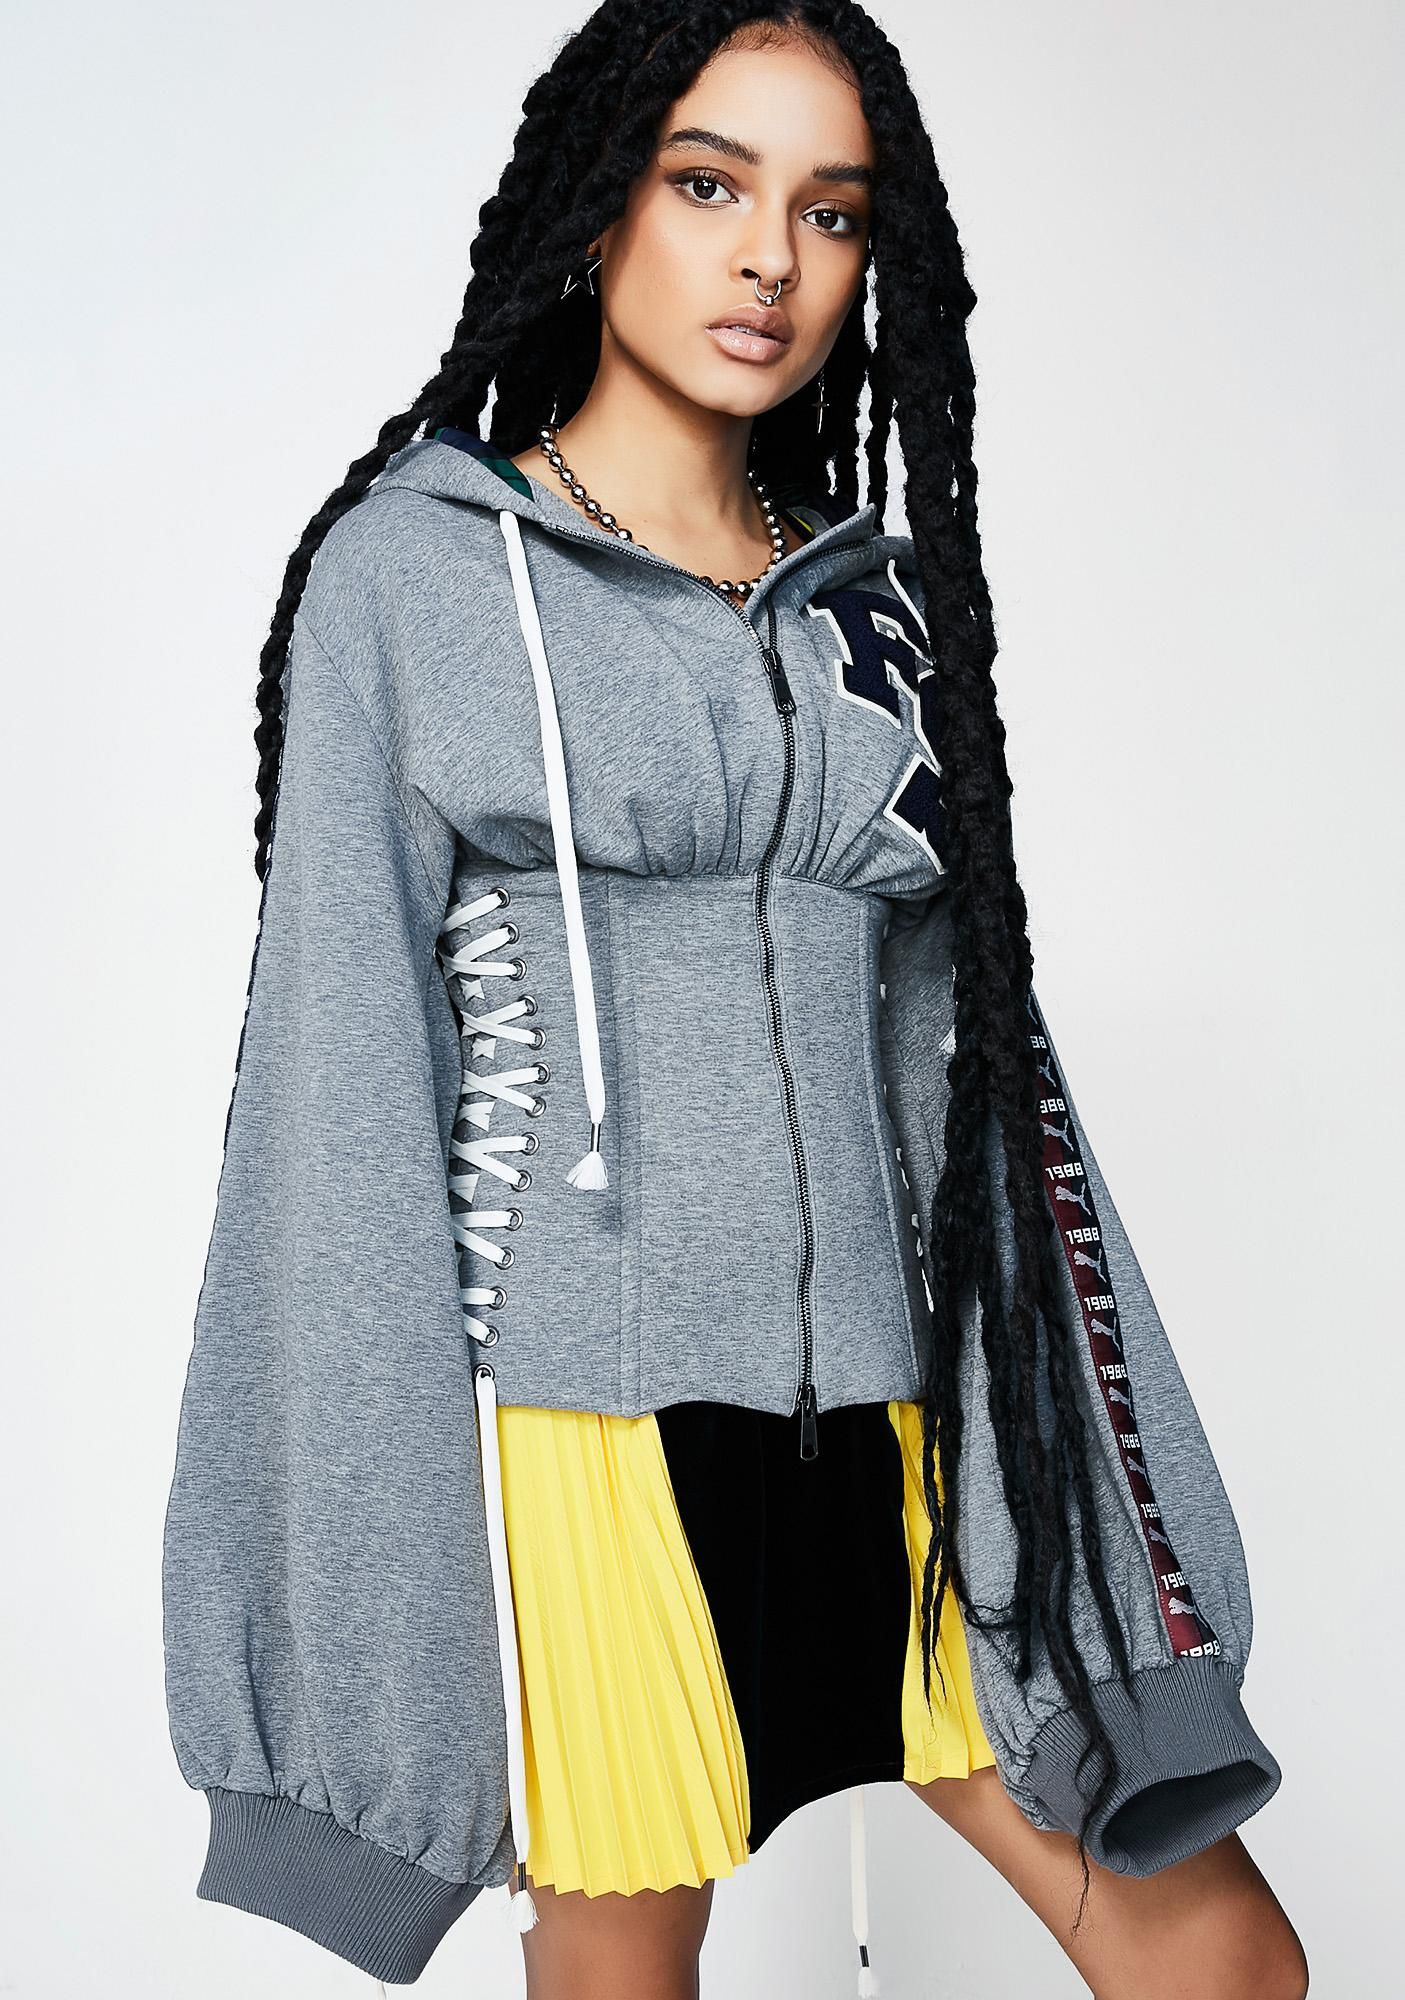 36cbcba9c2c4 PUMA FENTY PUMA By Rihanna Fleece Side Lace Hoody got ya lookin  fine af.  This gray hoodie has a front zipper closure and corset-style lace-ups on  both ...